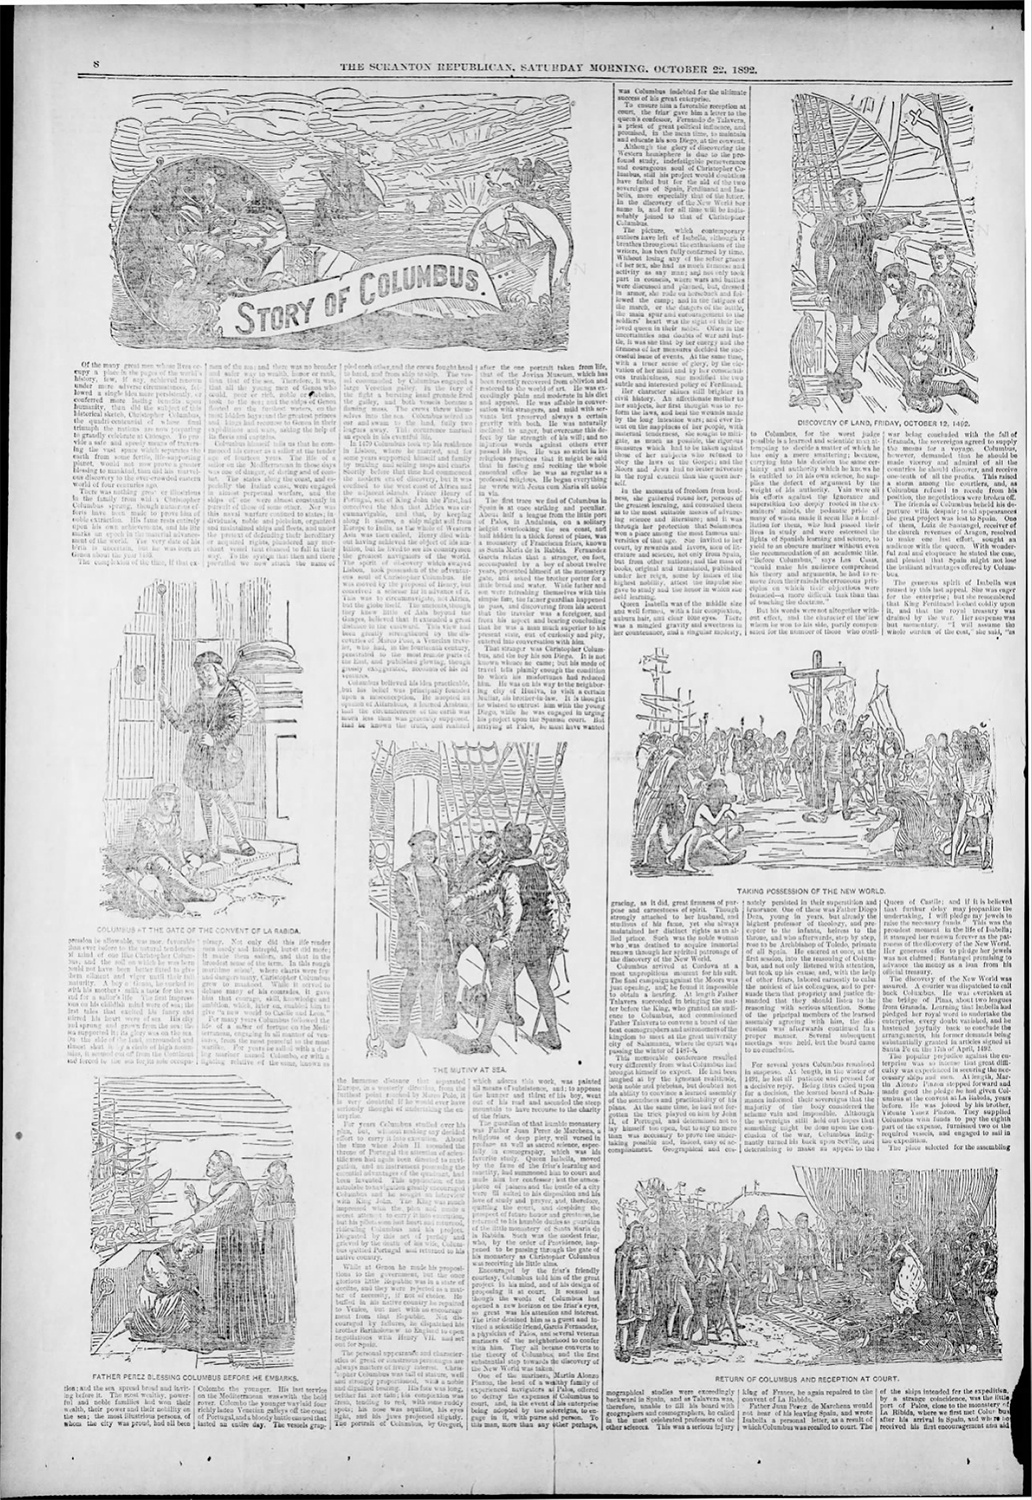 """Newspapers published the """"Story of Columbus"""" as a part of the nation's celebration of Discoverer's Day in October 1892. This page from The Scranton Republican is typical of what paper ran at the time, and these accounts became the basis for how we once taught the history of Columbus in public schools."""